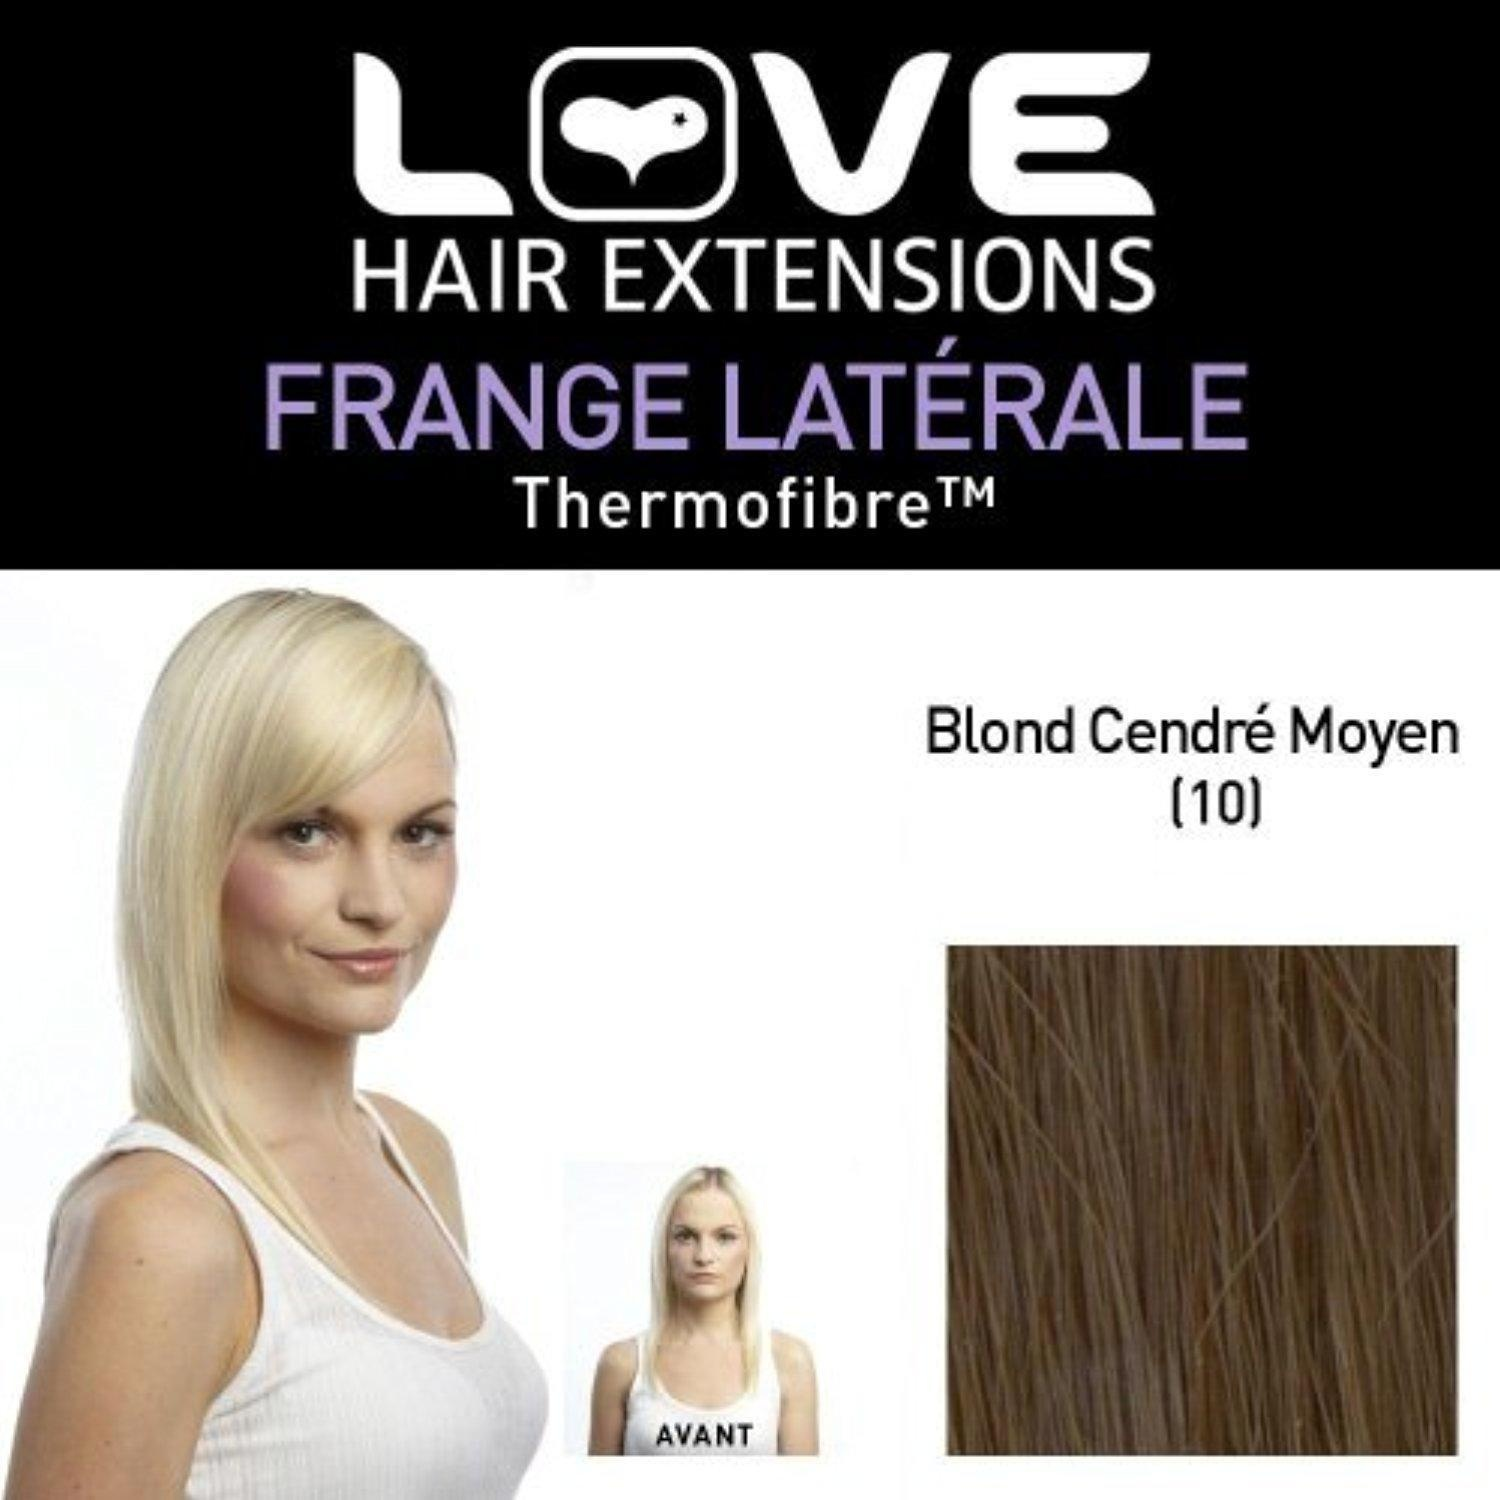 Love Hair Extensions LHE/FRK1/QFC/CISF/10 Clip-In Side Fringe Thermofibre Colour 10 Medium Ash Brown by Love Hair Extensions